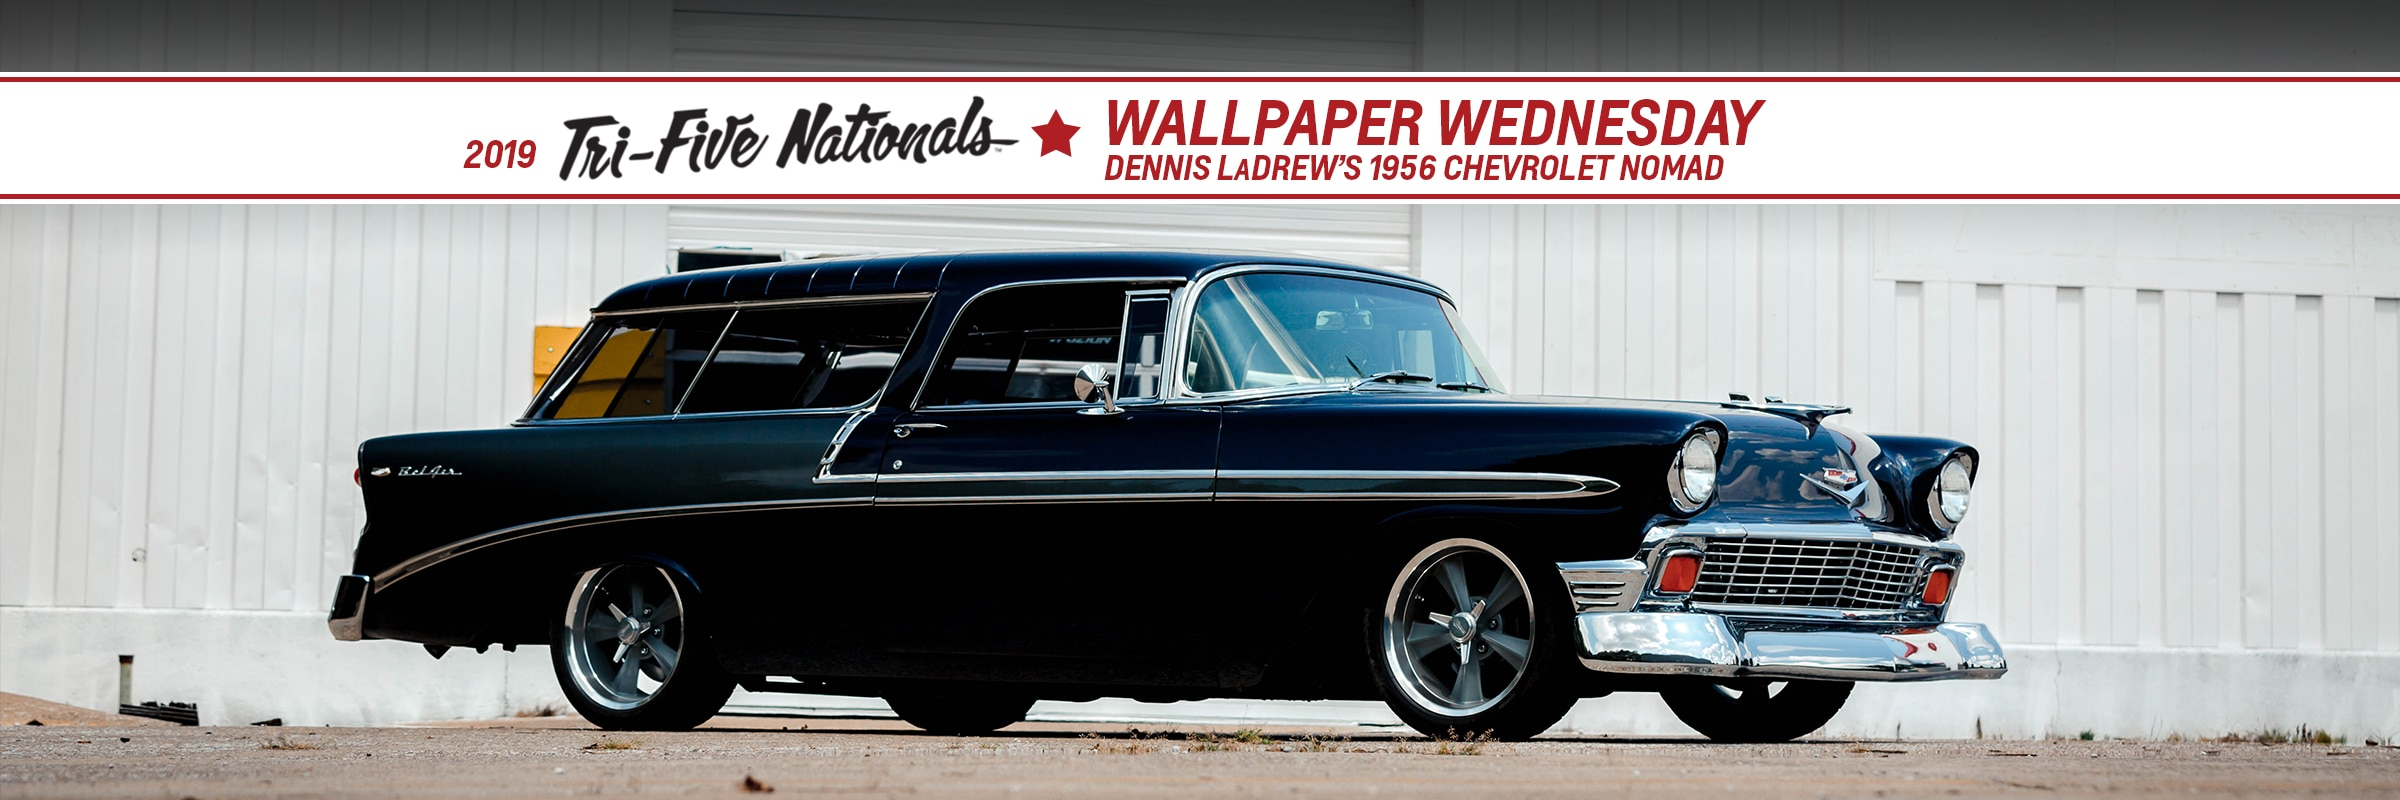 Events, Chevrolet, Chevrolet Performance, Chevy, Cars, Car Shows, Bowling Green, Kentucky, Beech Bend, Beech Bend Raceway, Beech Bend Raceway Park, Tri-Five Nationals, Tri-Five Chevy, Nomad, Chevy Nomad, 56 Chevy Nomad, 55-57 Chevy, Wallpapers, Downloads